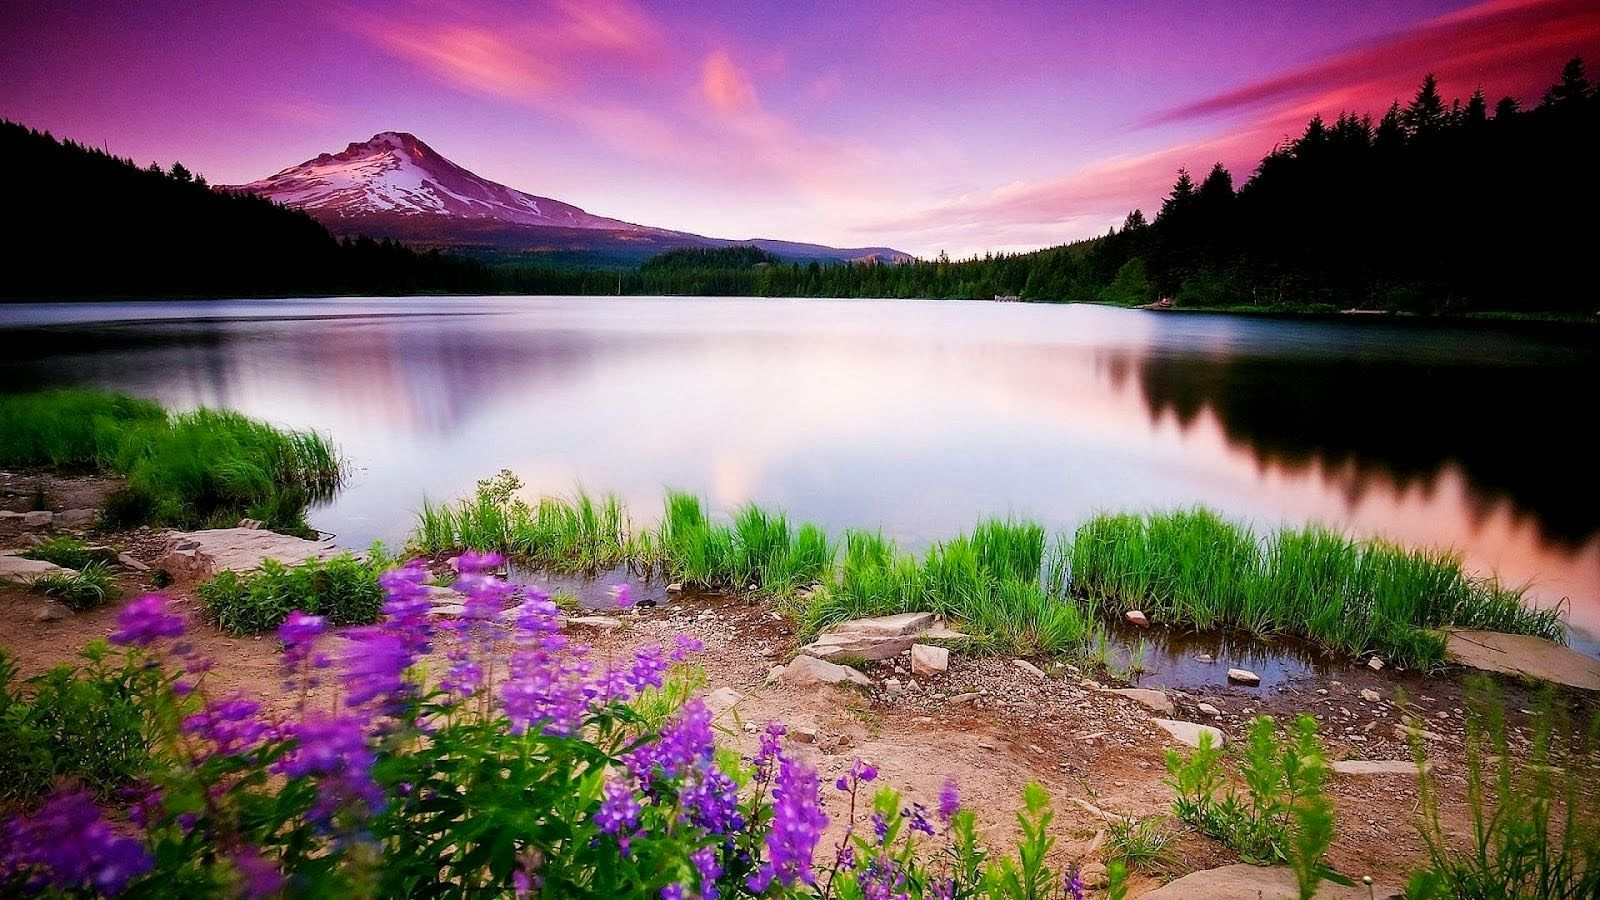 Hd wallpaper download for laptop - Colorful Lake Mountains Full Hd Nature Wallpapers Free Downloads For Laptop Pc Desktop Backgrounds